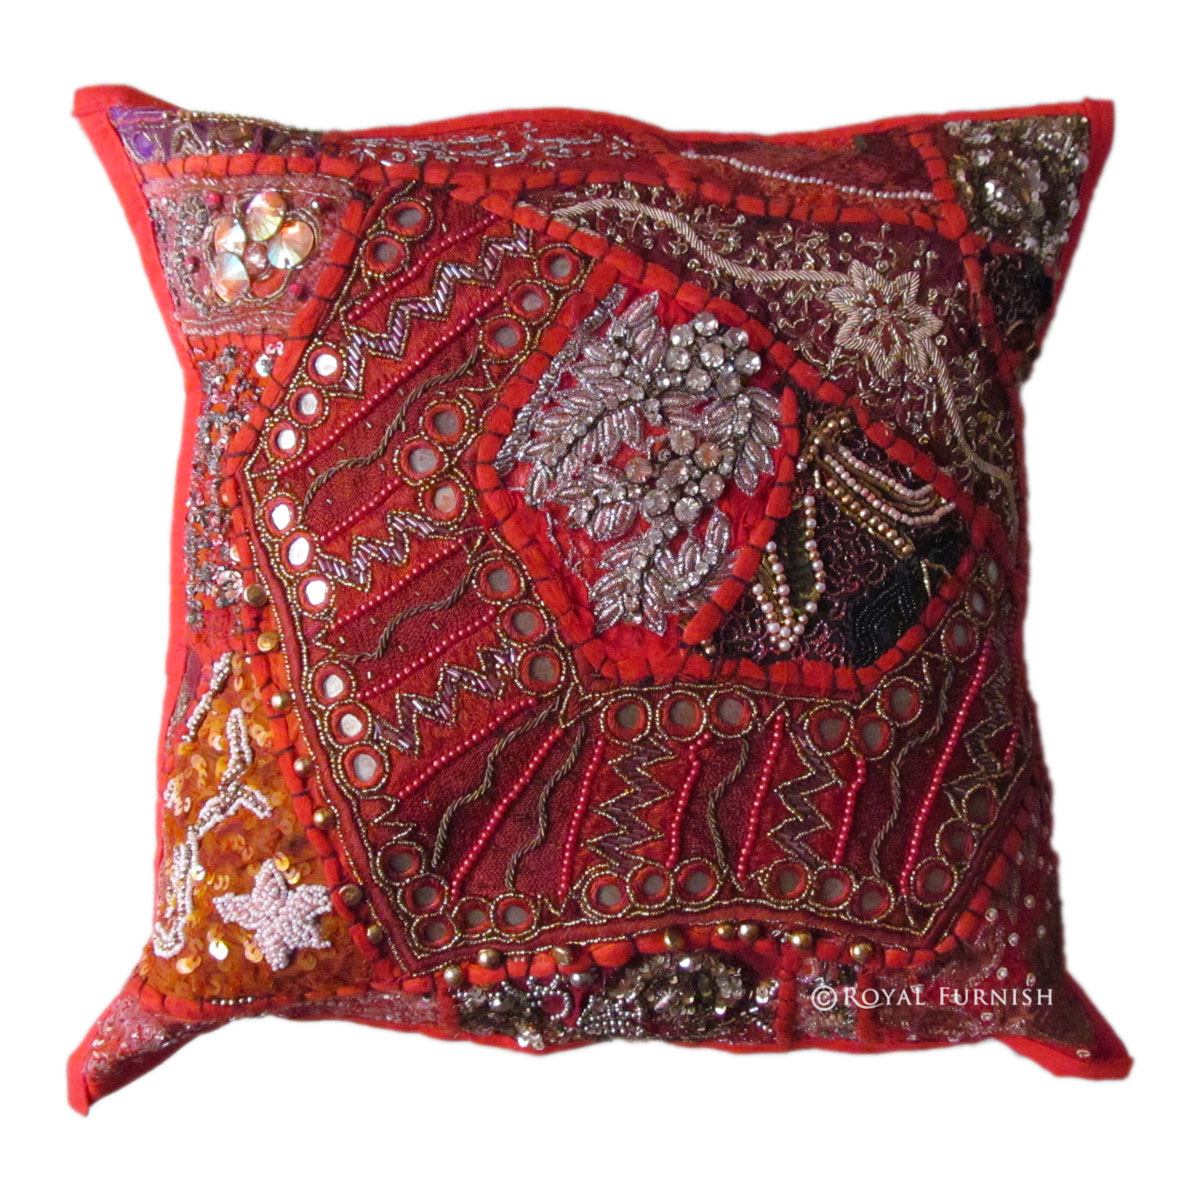 Vintage Antique Red Beaded Amp Embroidered Accent Throw